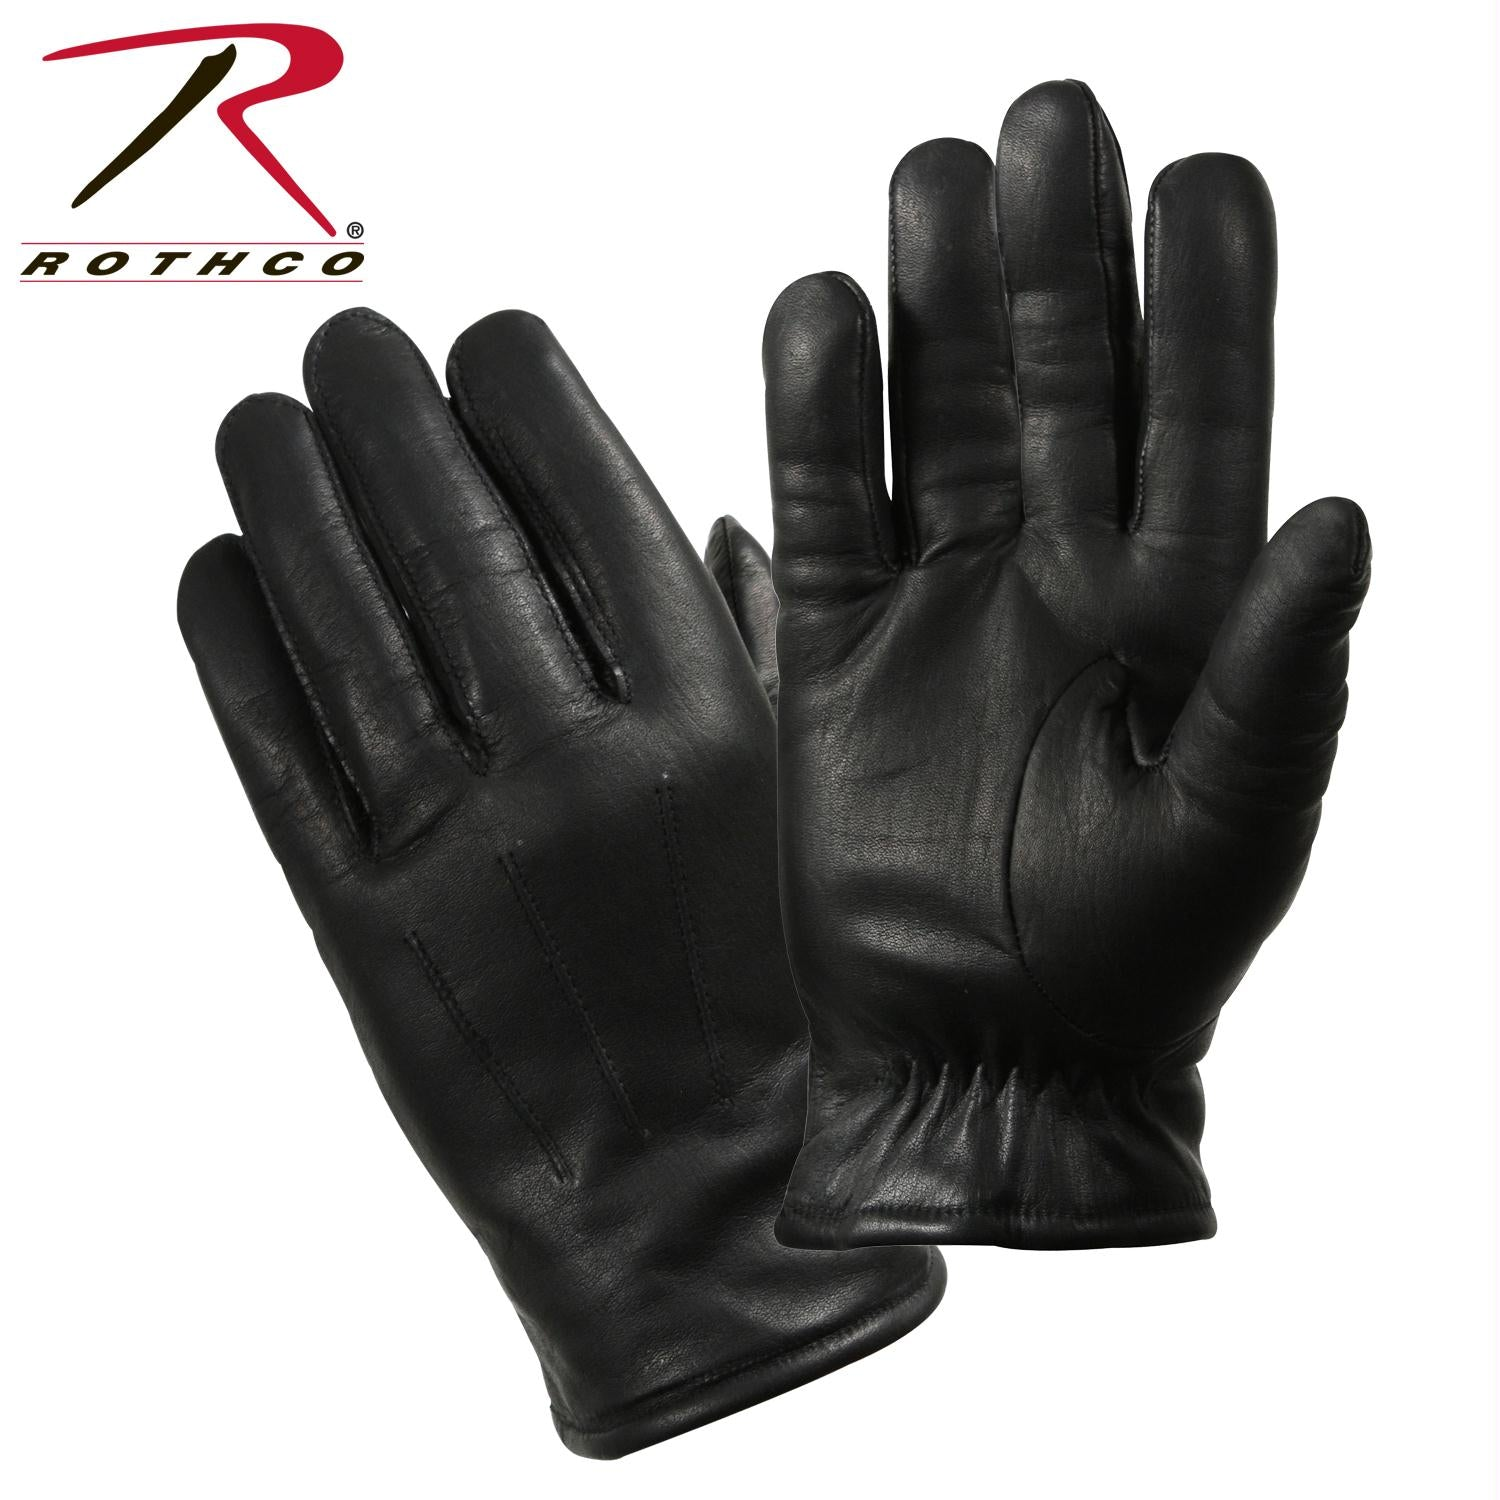 Rothco Cold Weather Leather Police Gloves - 2XL